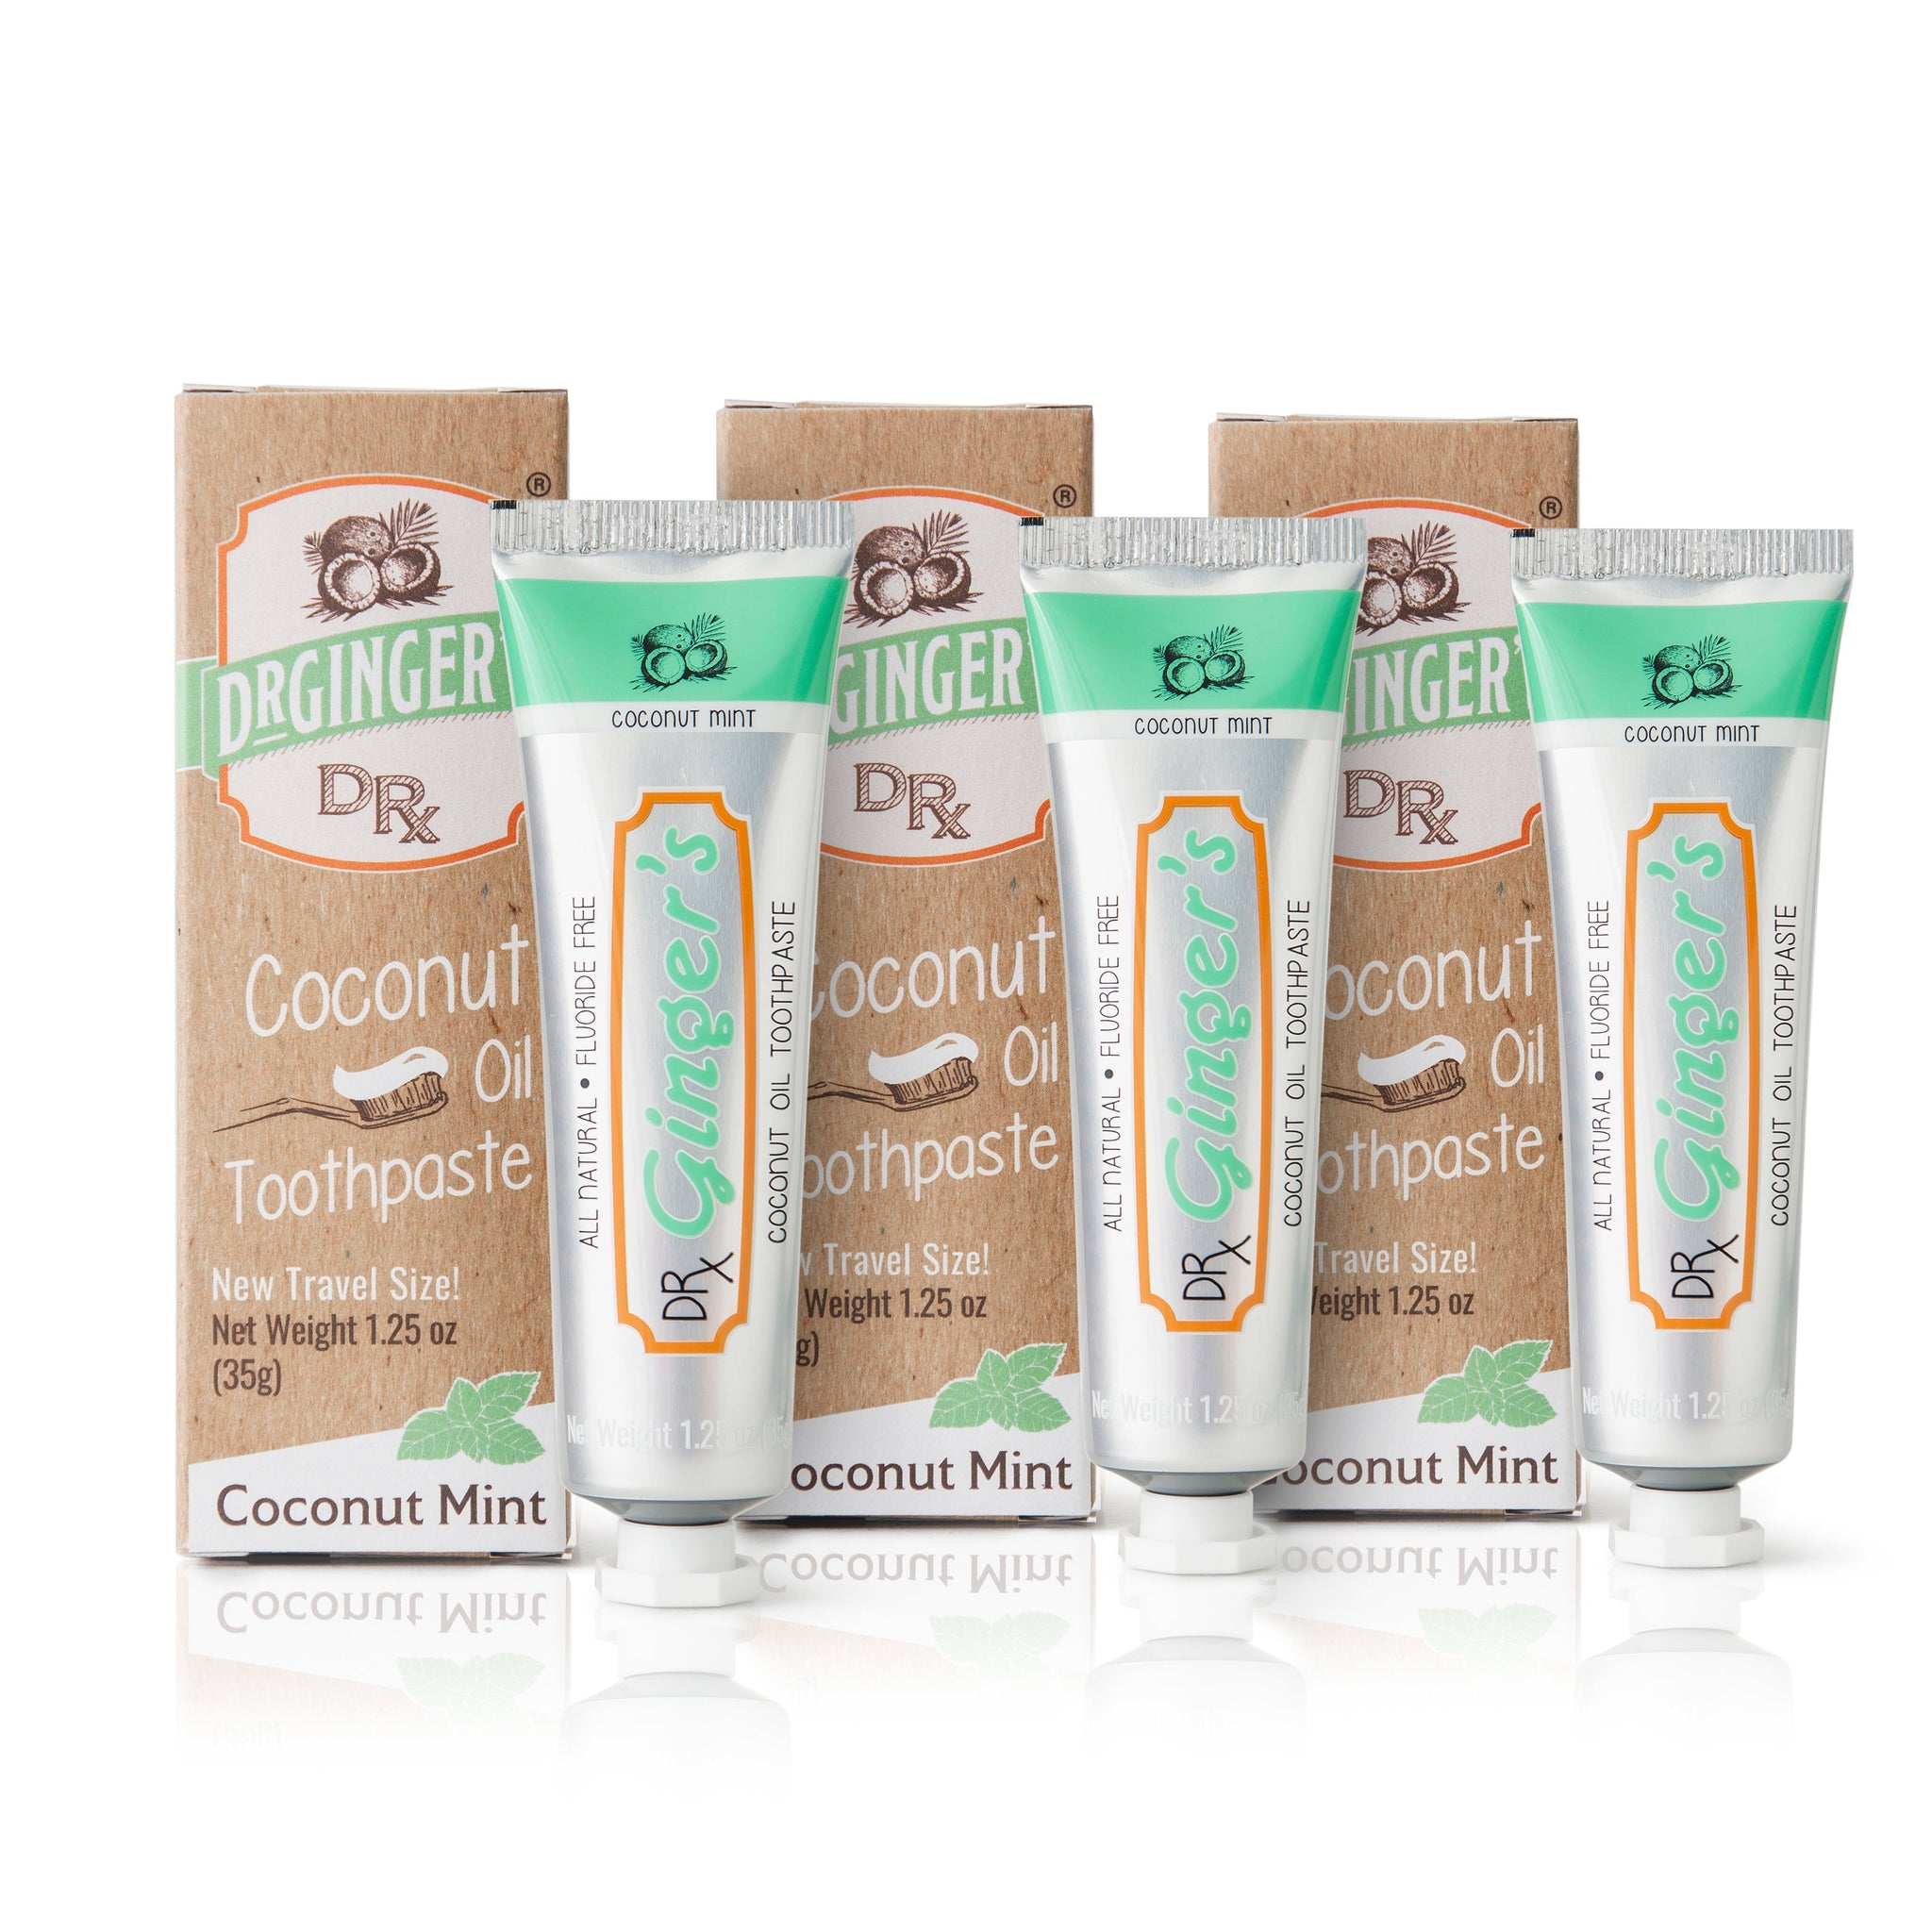 Dr. Ginger's Travel size Coconut Oil Toothpaste Triple Bundle